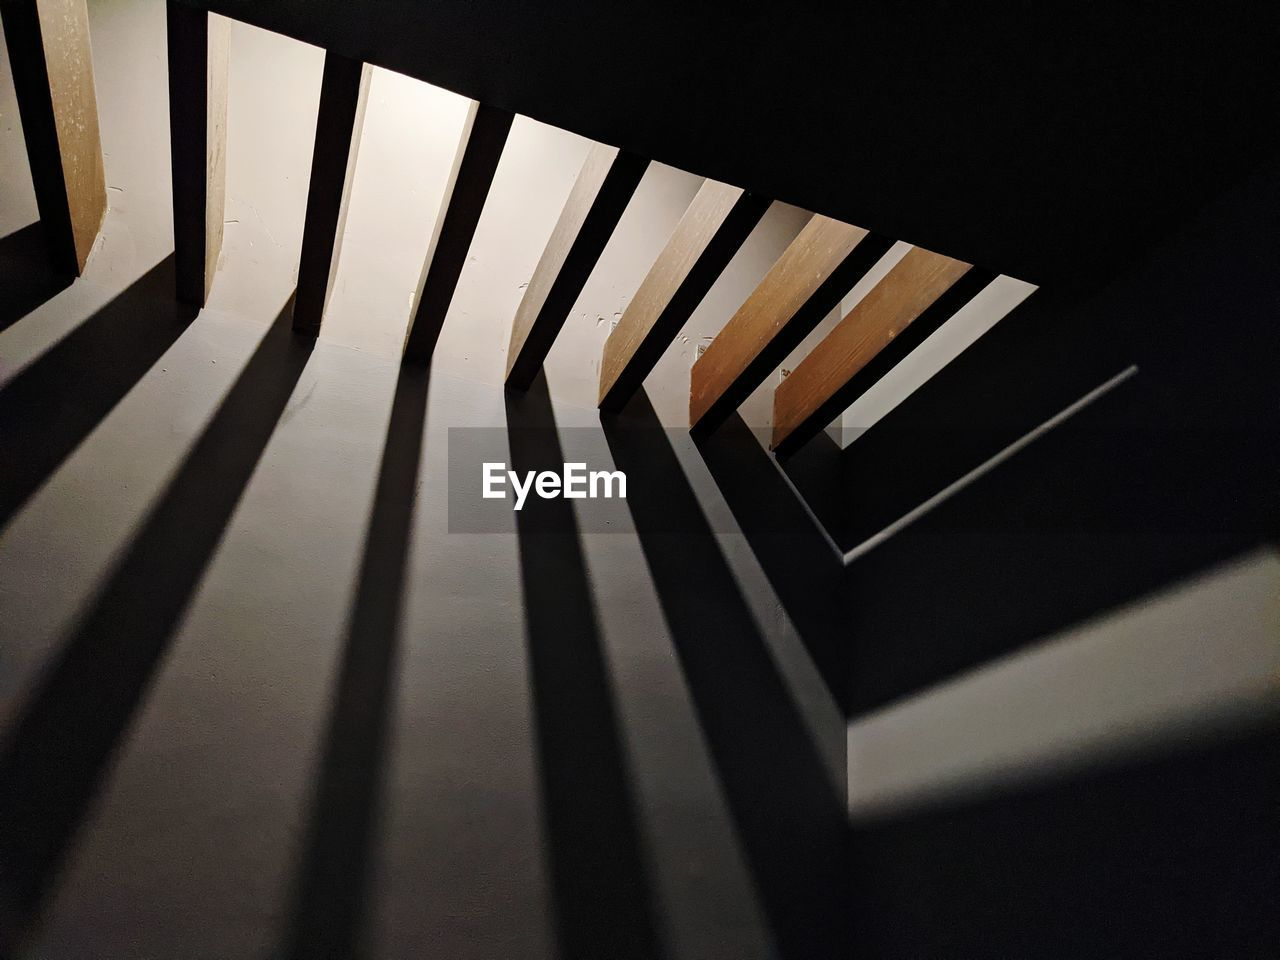 HIGH ANGLE VIEW OF PIANO KEYS ON WOODEN FLOOR